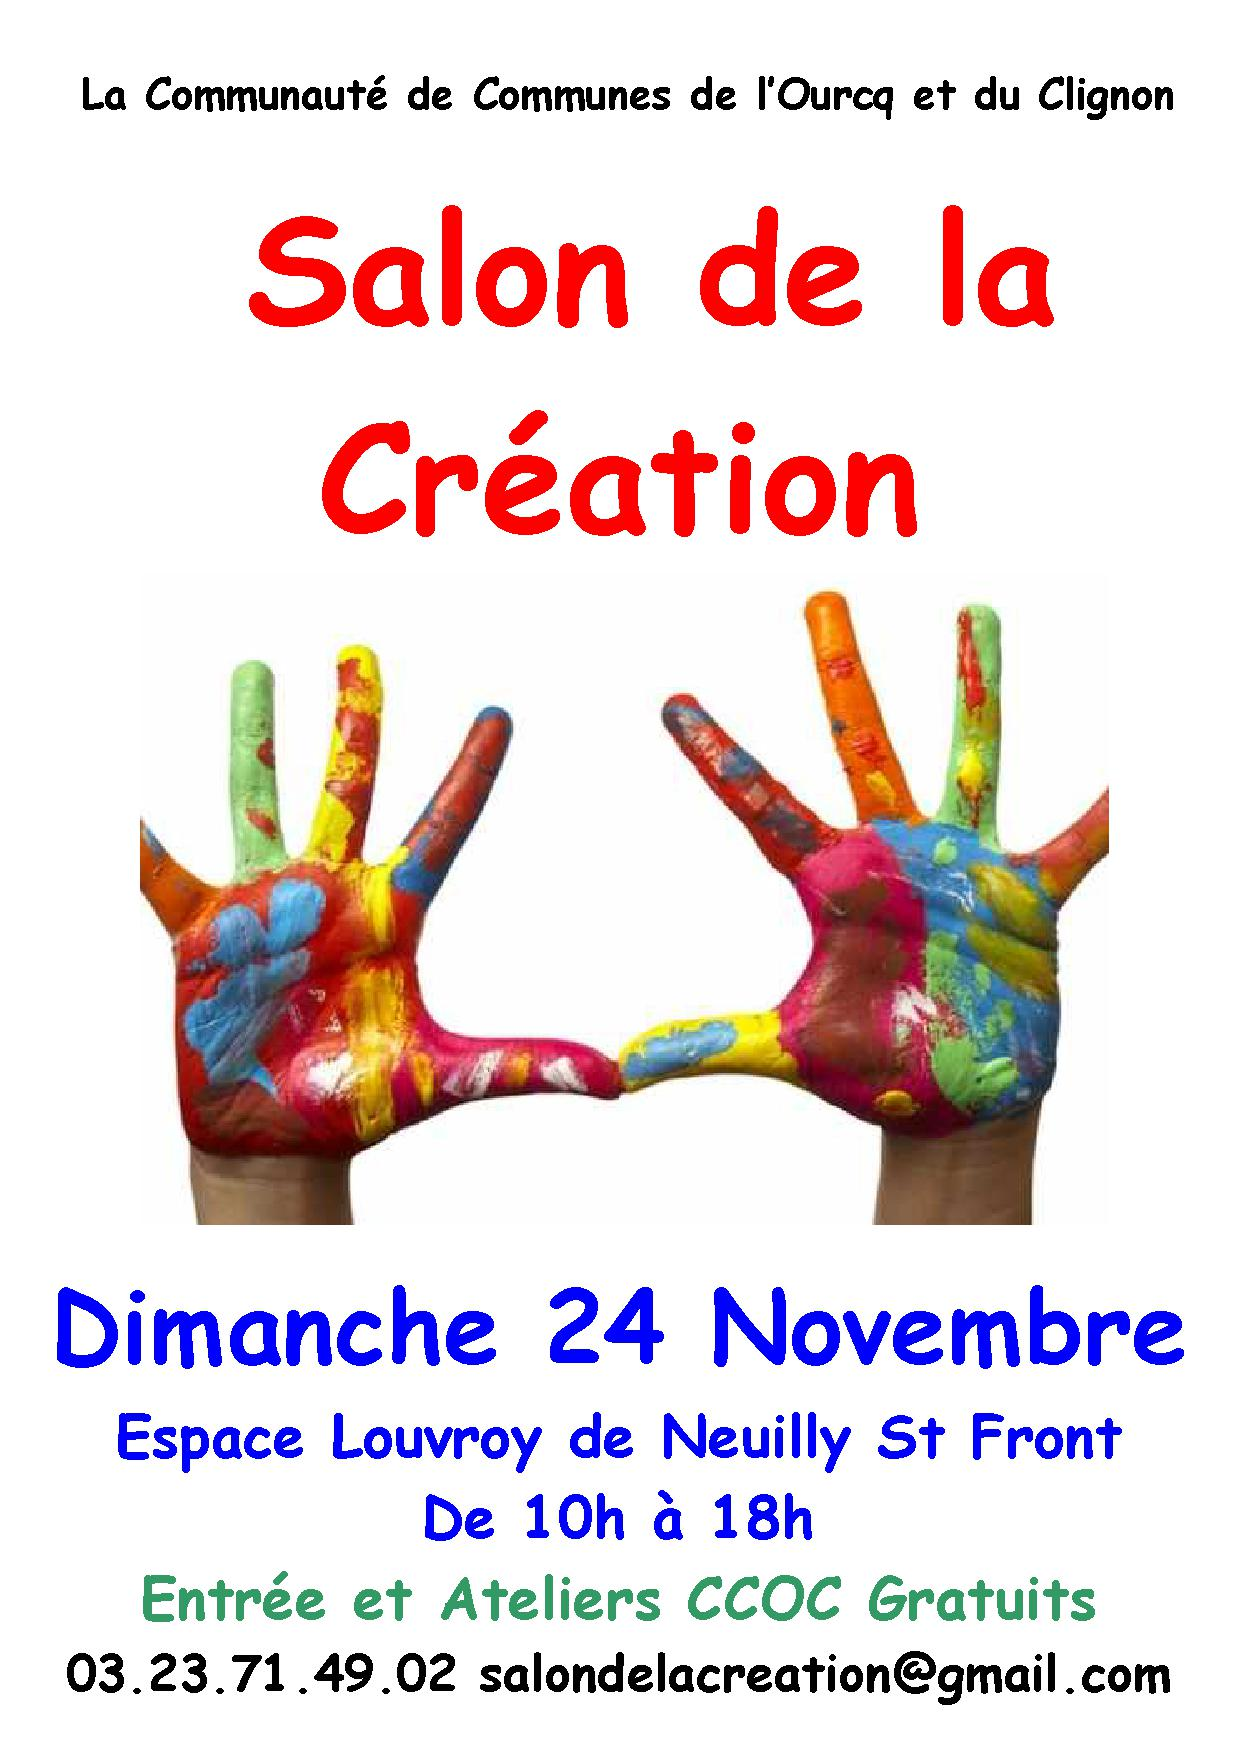 Salon de la cr ation le 24 novembre prochain jiji hook for A new creation salon